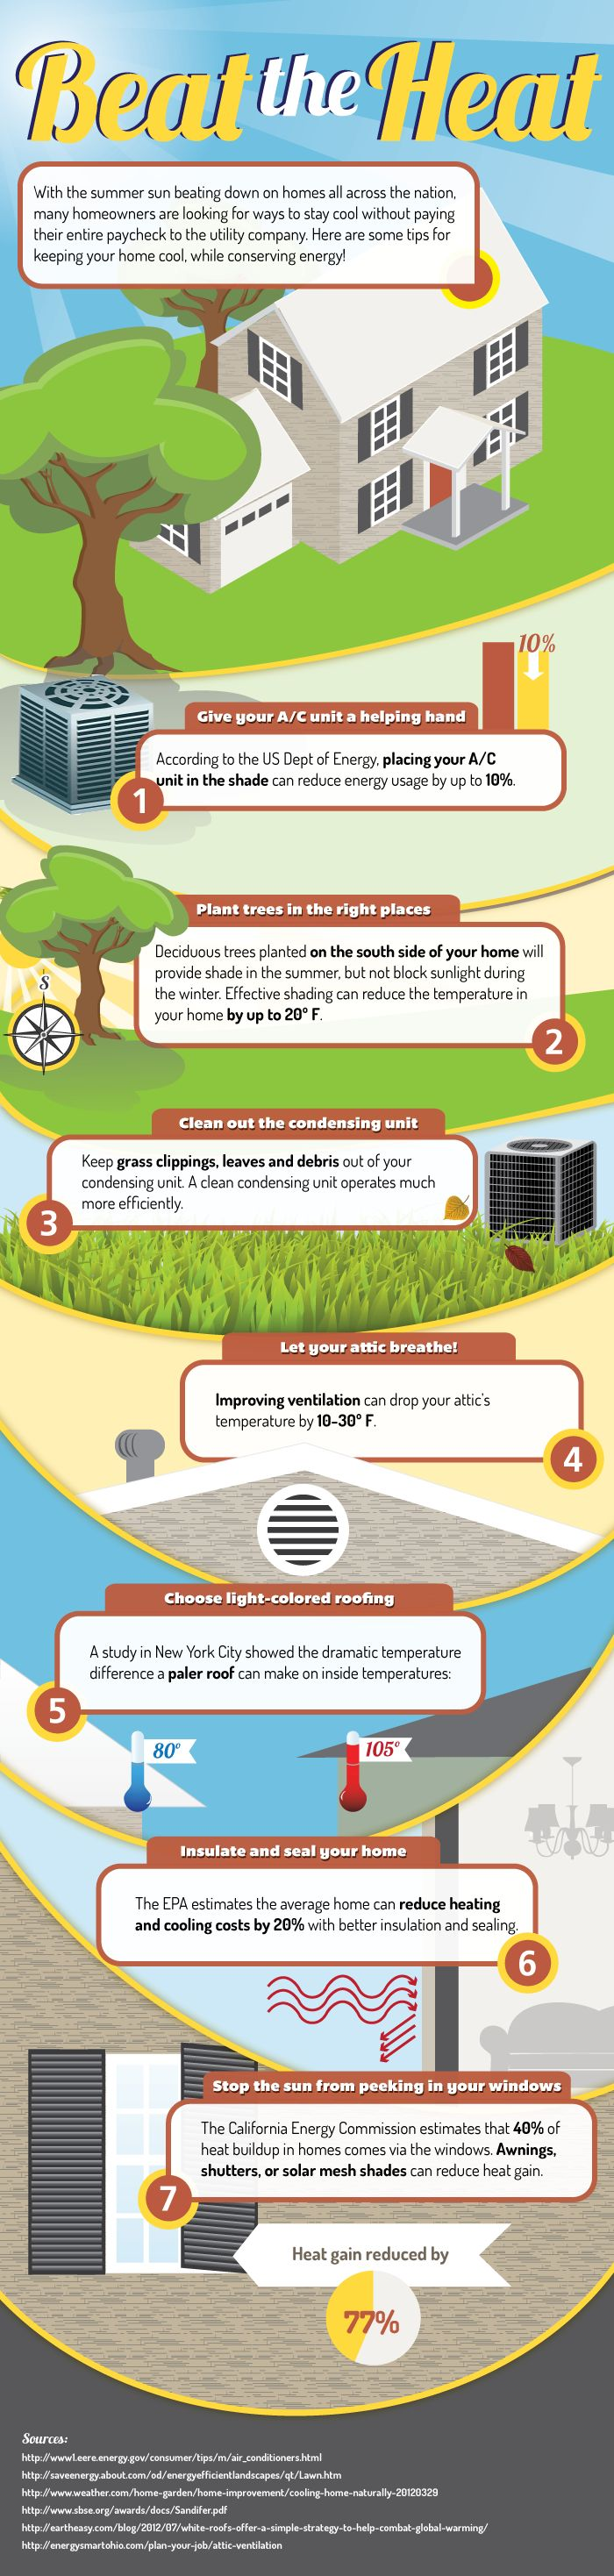 Energy Saving Tips For Summer 164 best energy conservation images on pinterest | energy